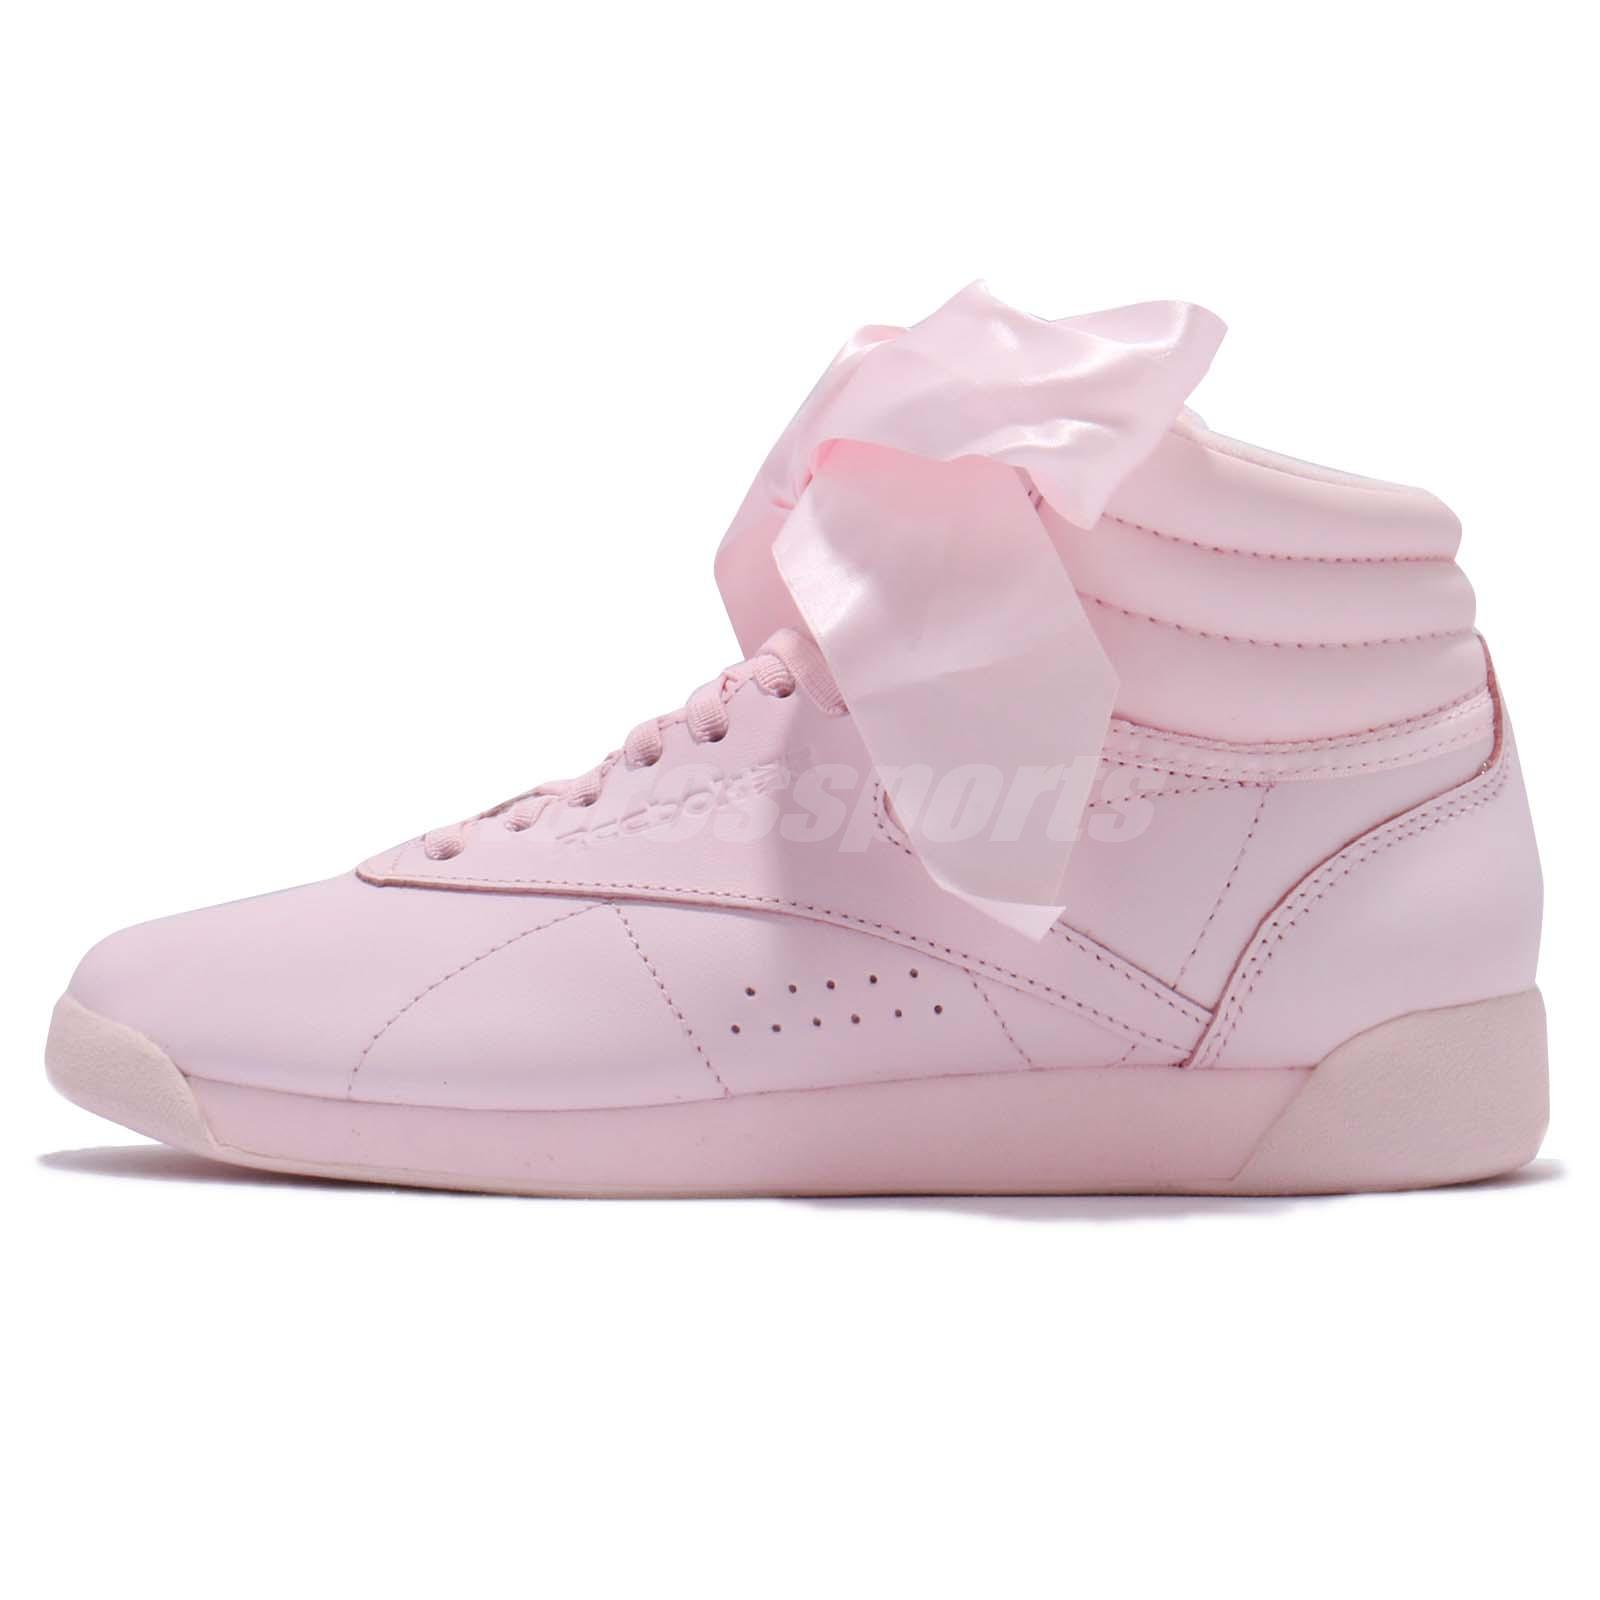 eae541c1b51bd Details about Reebok Classic Freestyle F/S Hi Satin Bow Pink Women Shoes  Sneakers CM8905